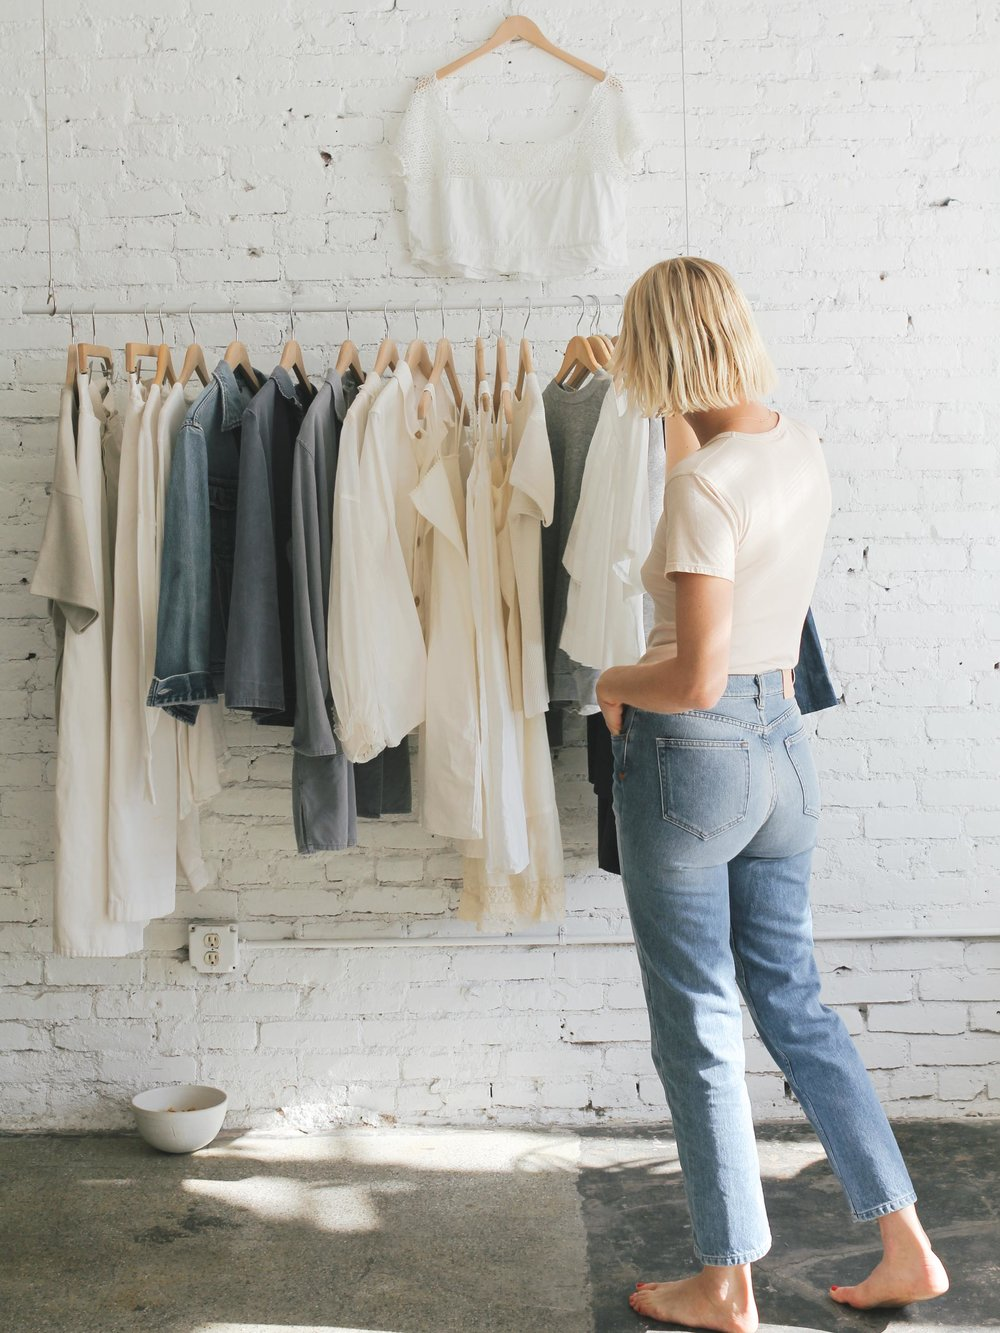 Candace wearing her Collector Fit denim in Medium Wash